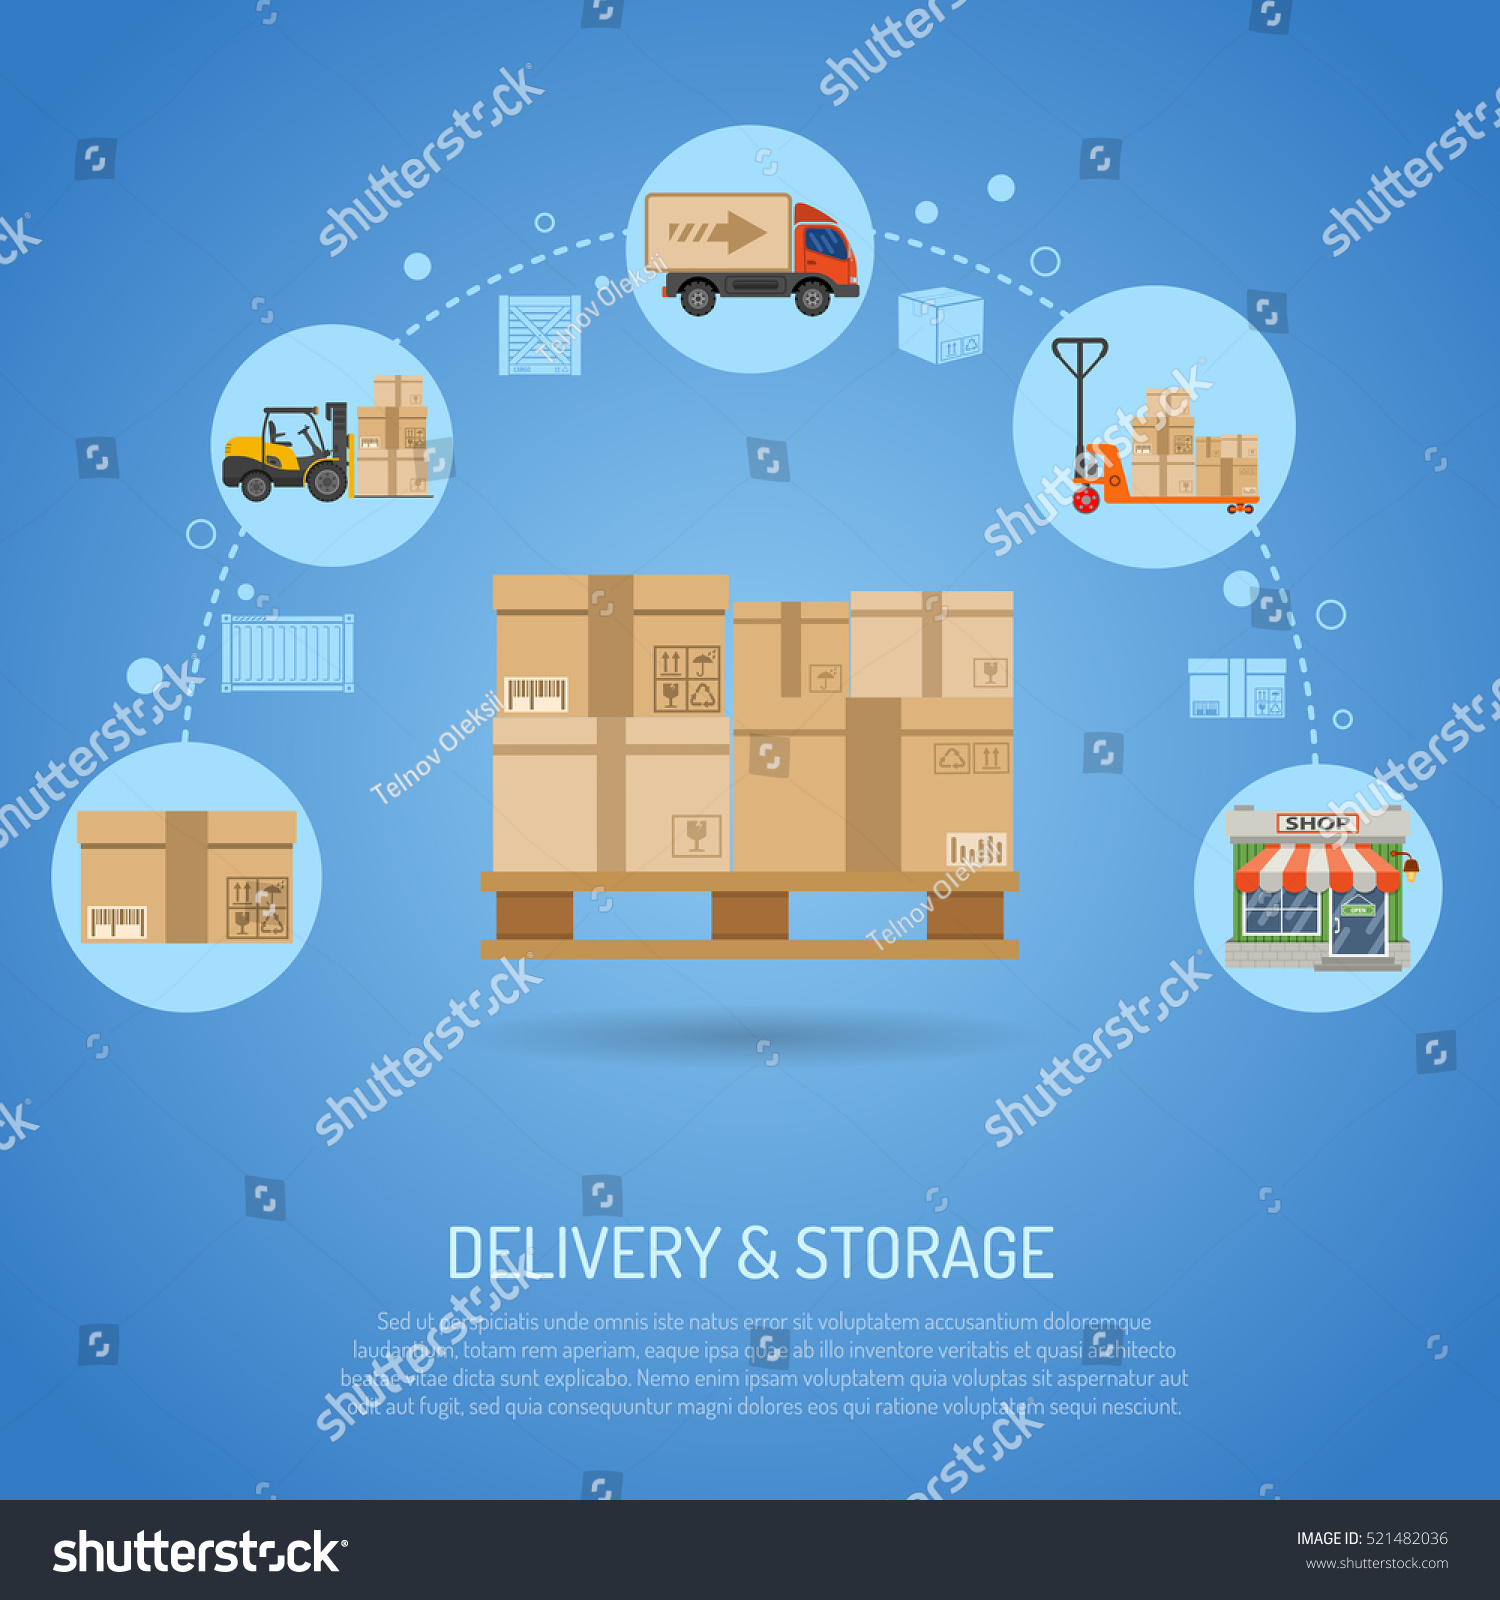 Delivery And Storage Concept Infographics With Flat Icons Pallet With Boxes  And Delivery Process In Store